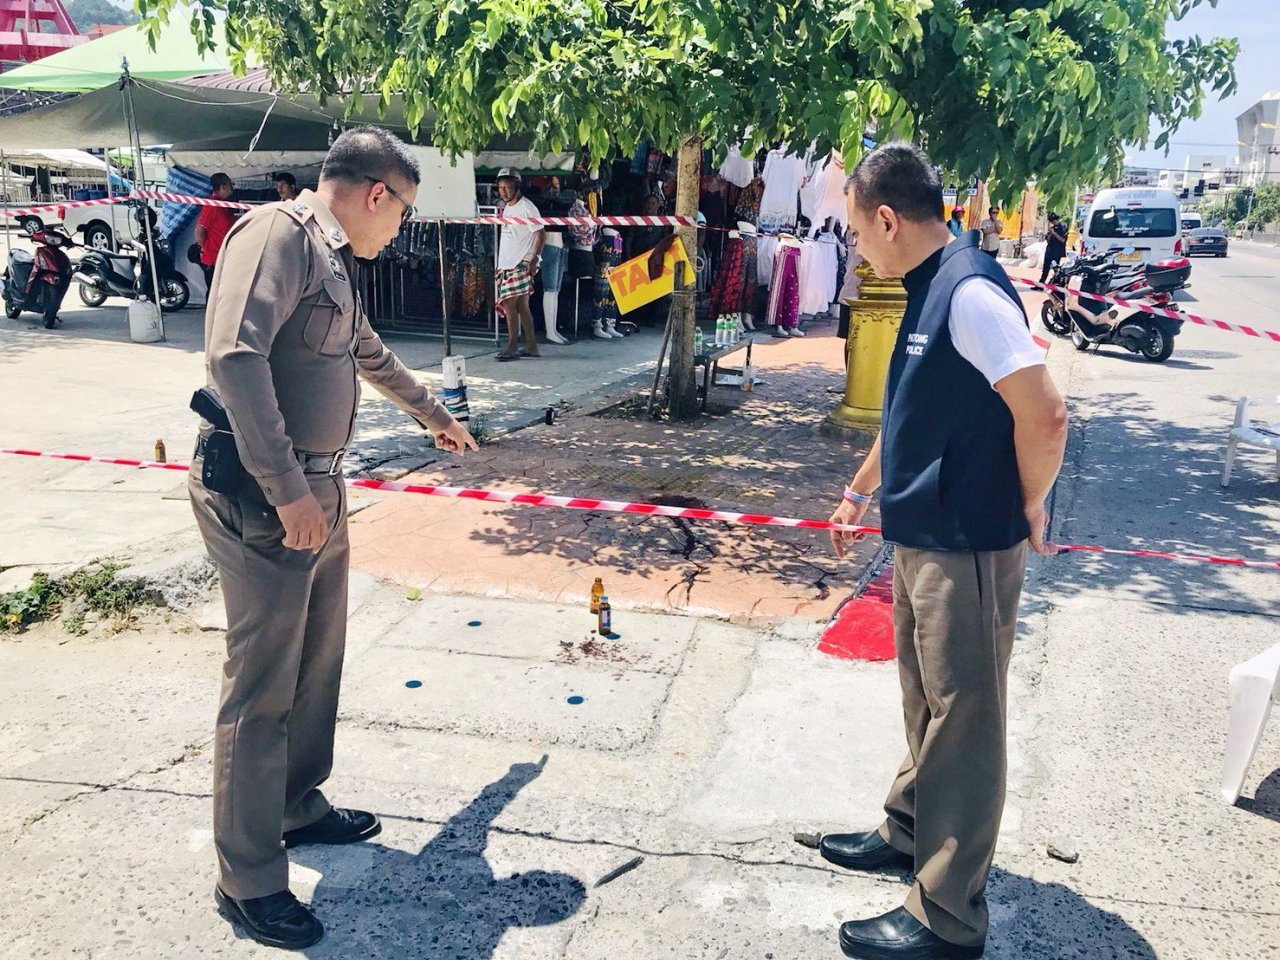 Taxi driver shot dead in Patong. A taxi driver was shot and killed in Patong on Thursday morning, apparently by a competitor over